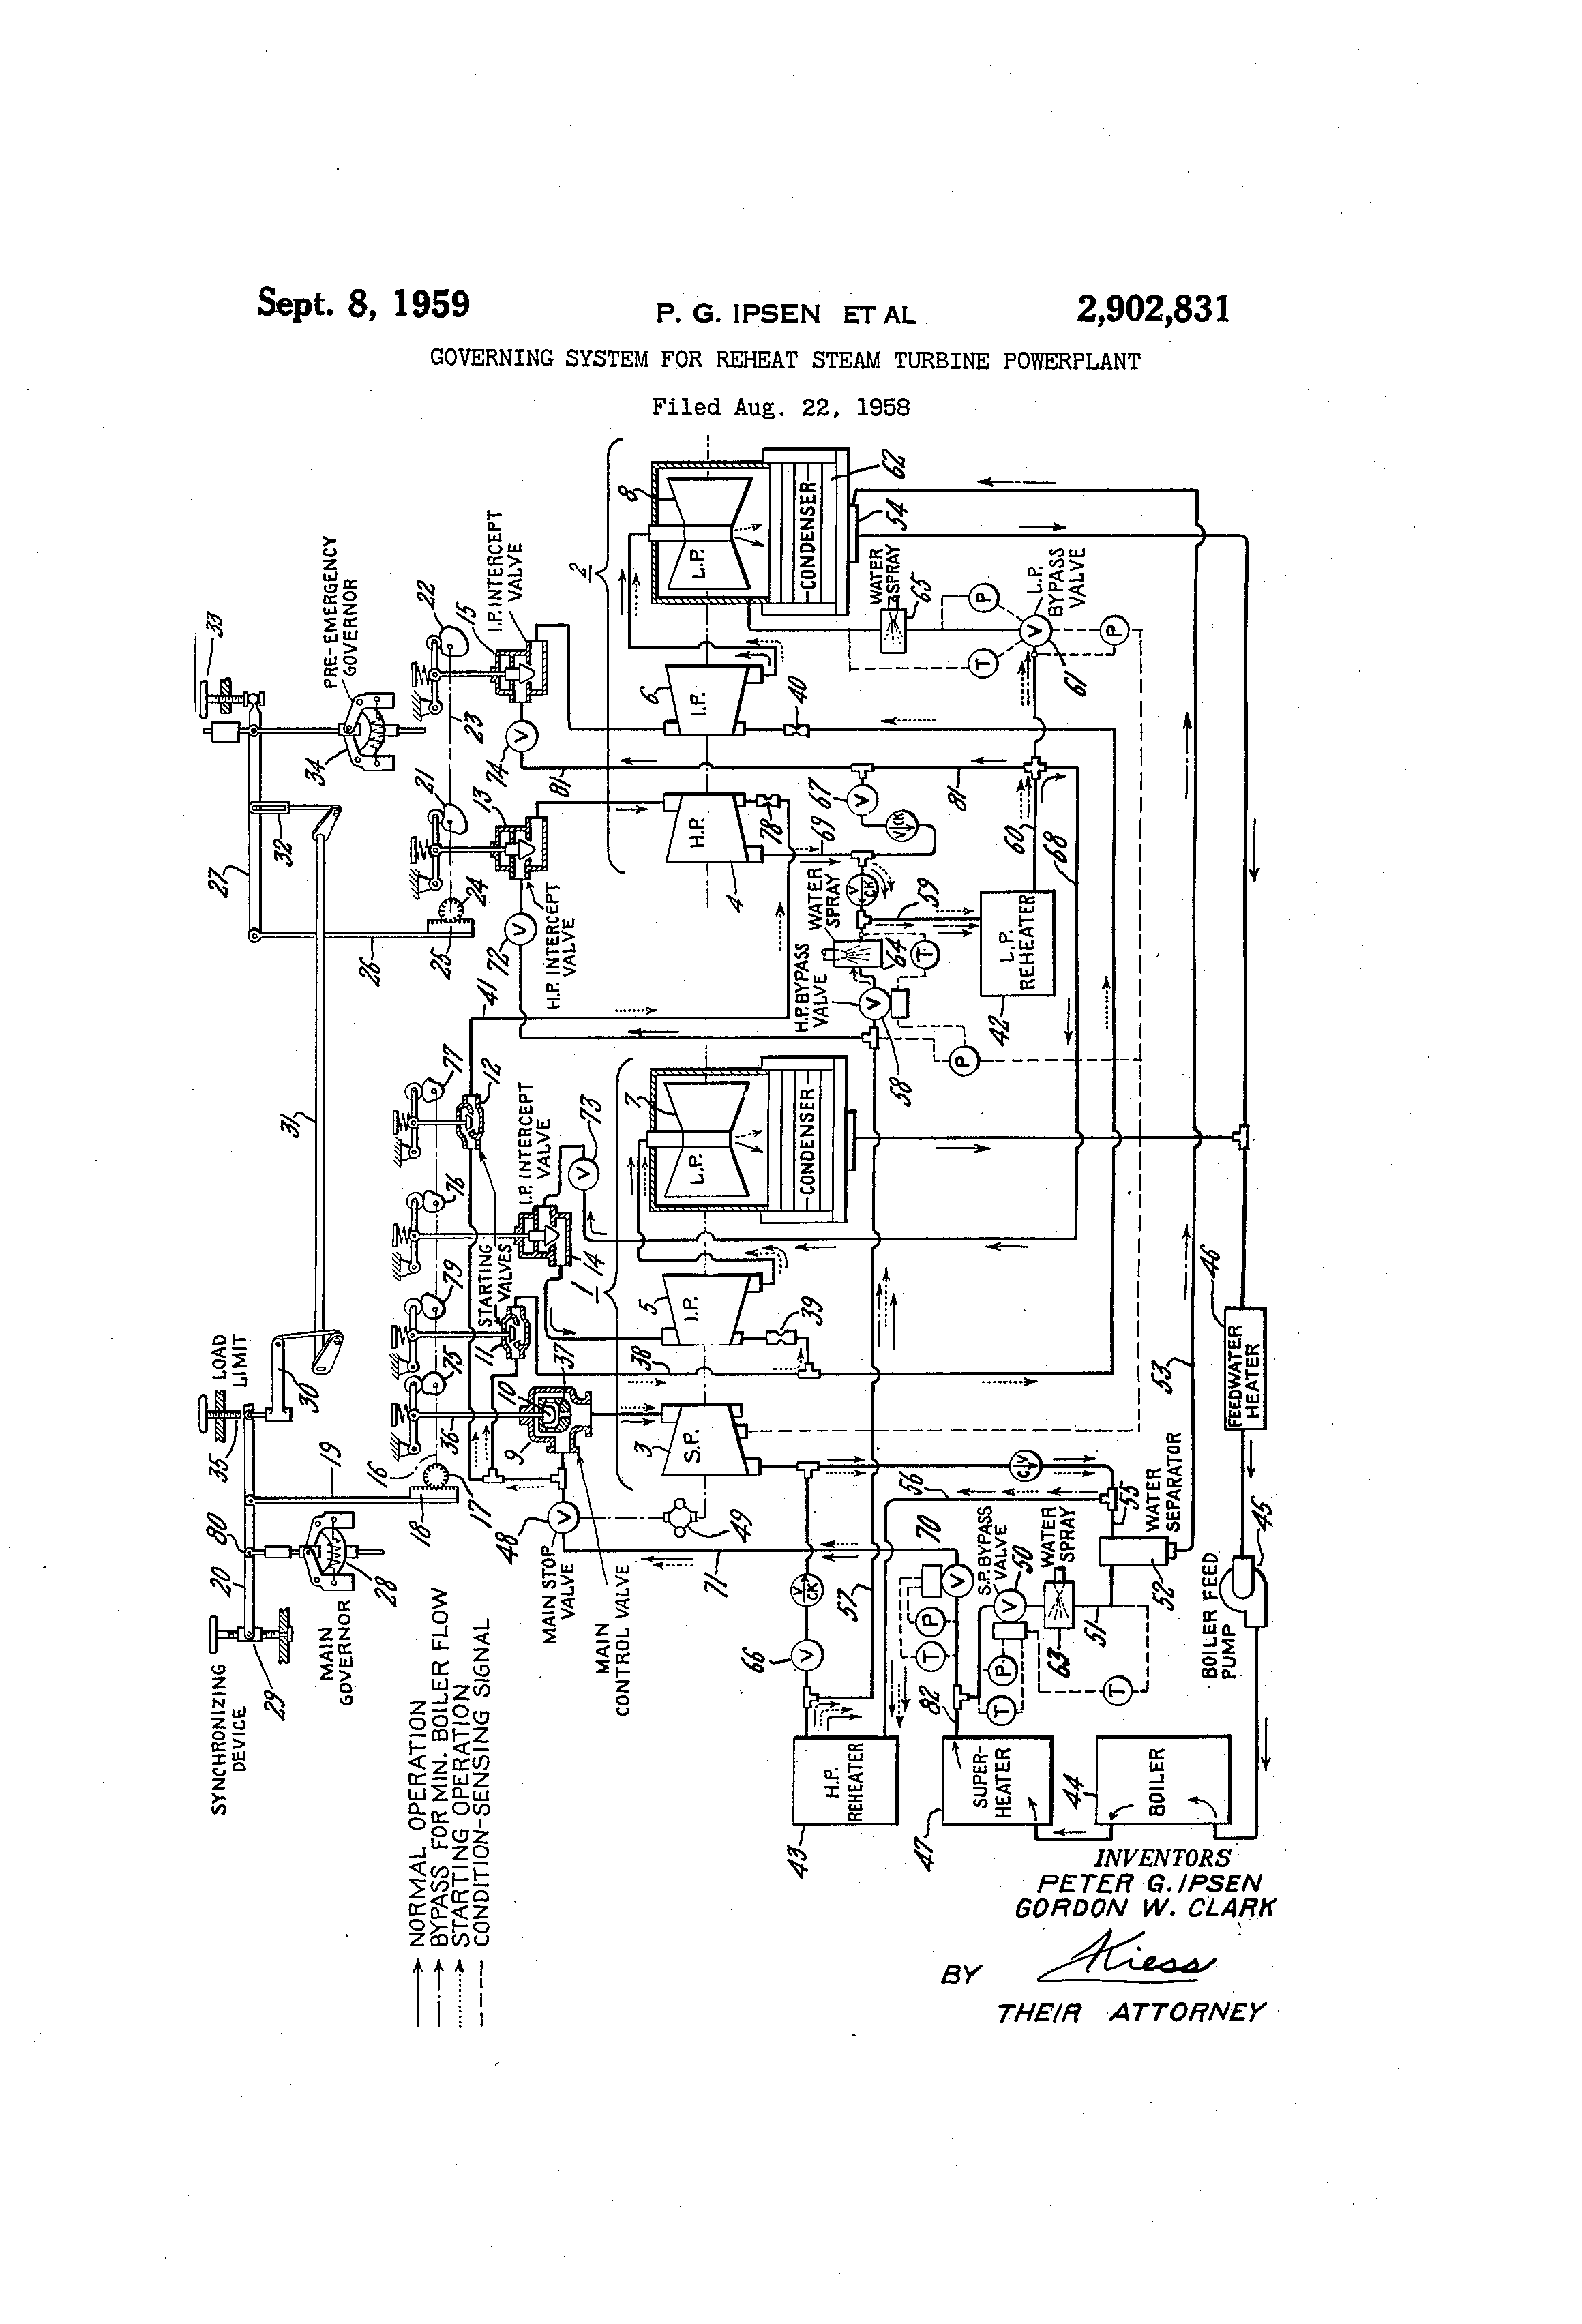 Patent US Governing system for reheat steam turbine